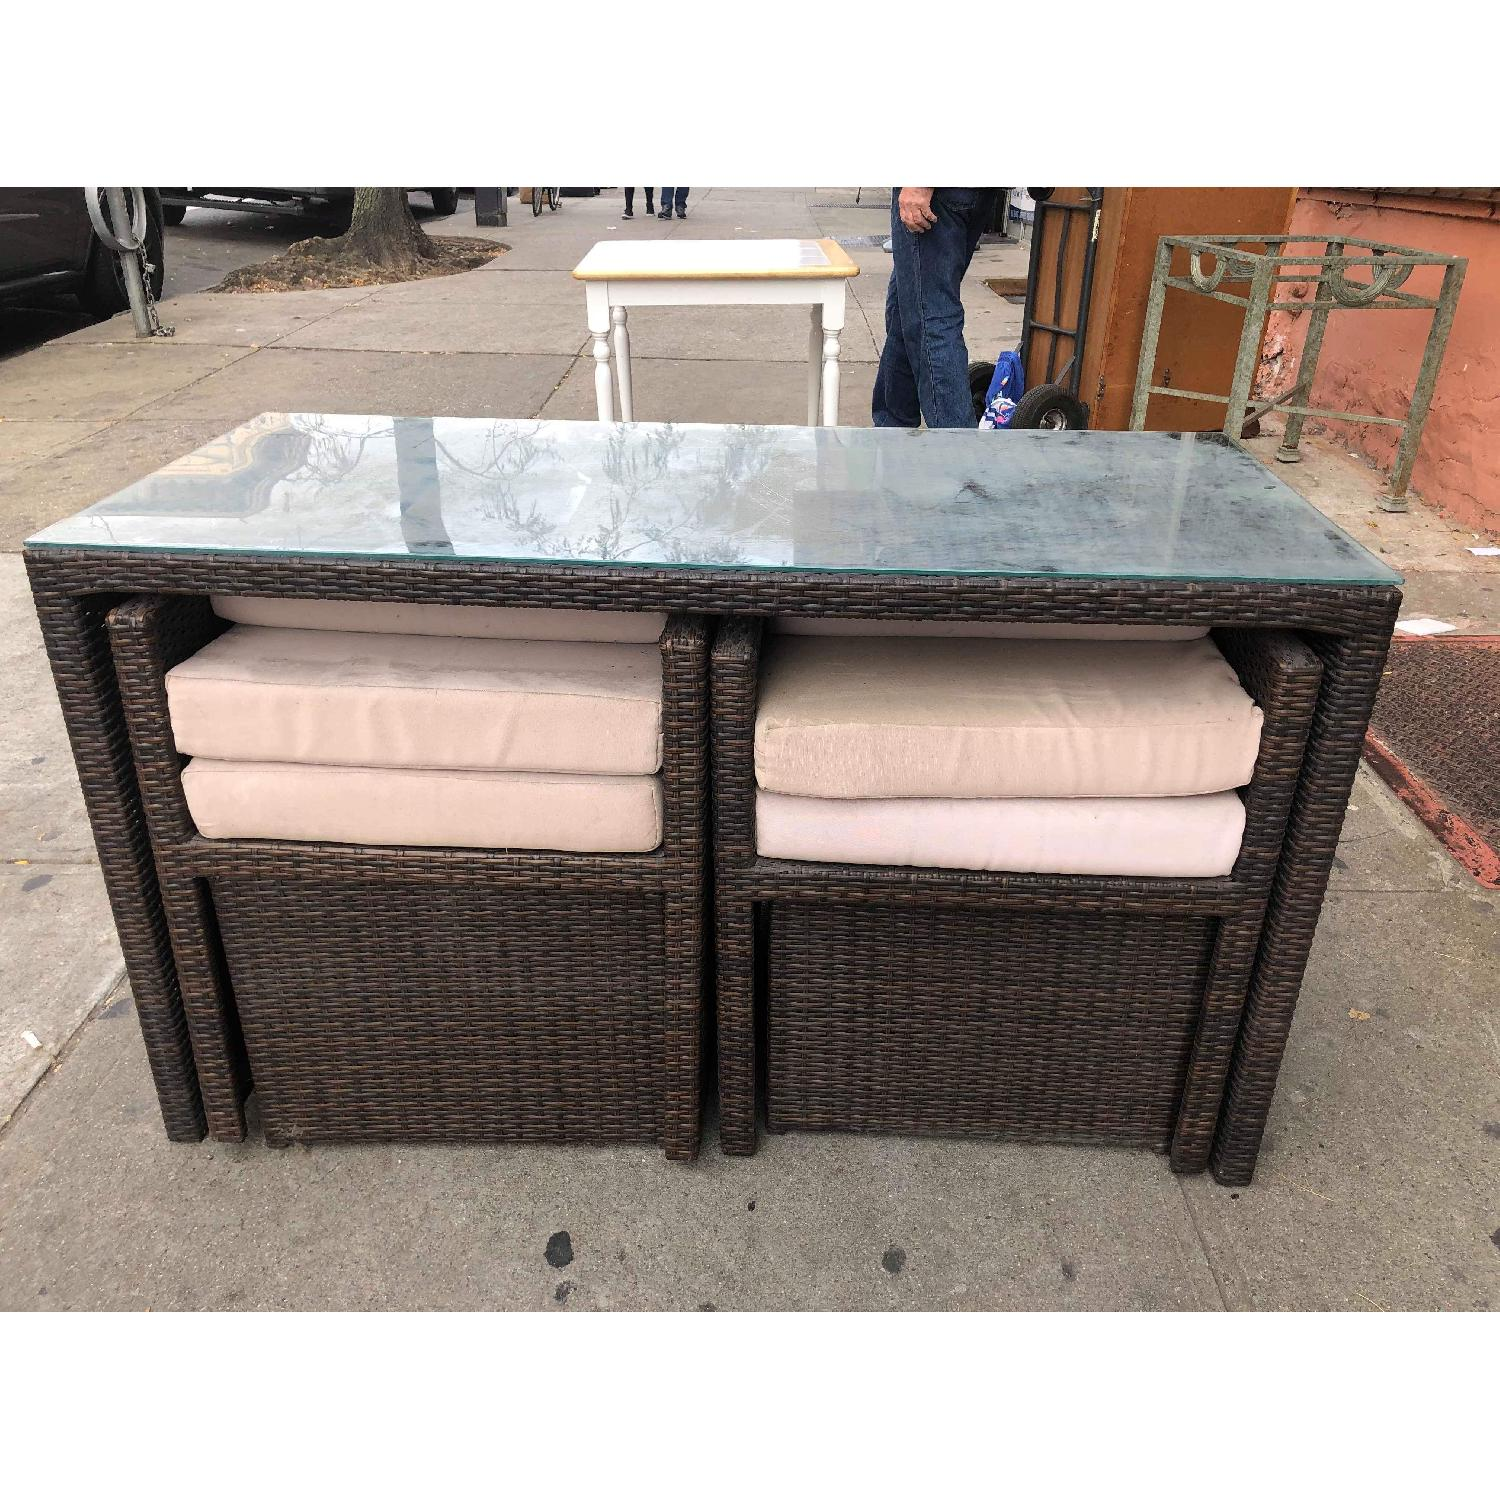 Outdoor Wicker 2 Armchairs w/ Ottomans & Table w/ Glass Top - image-13